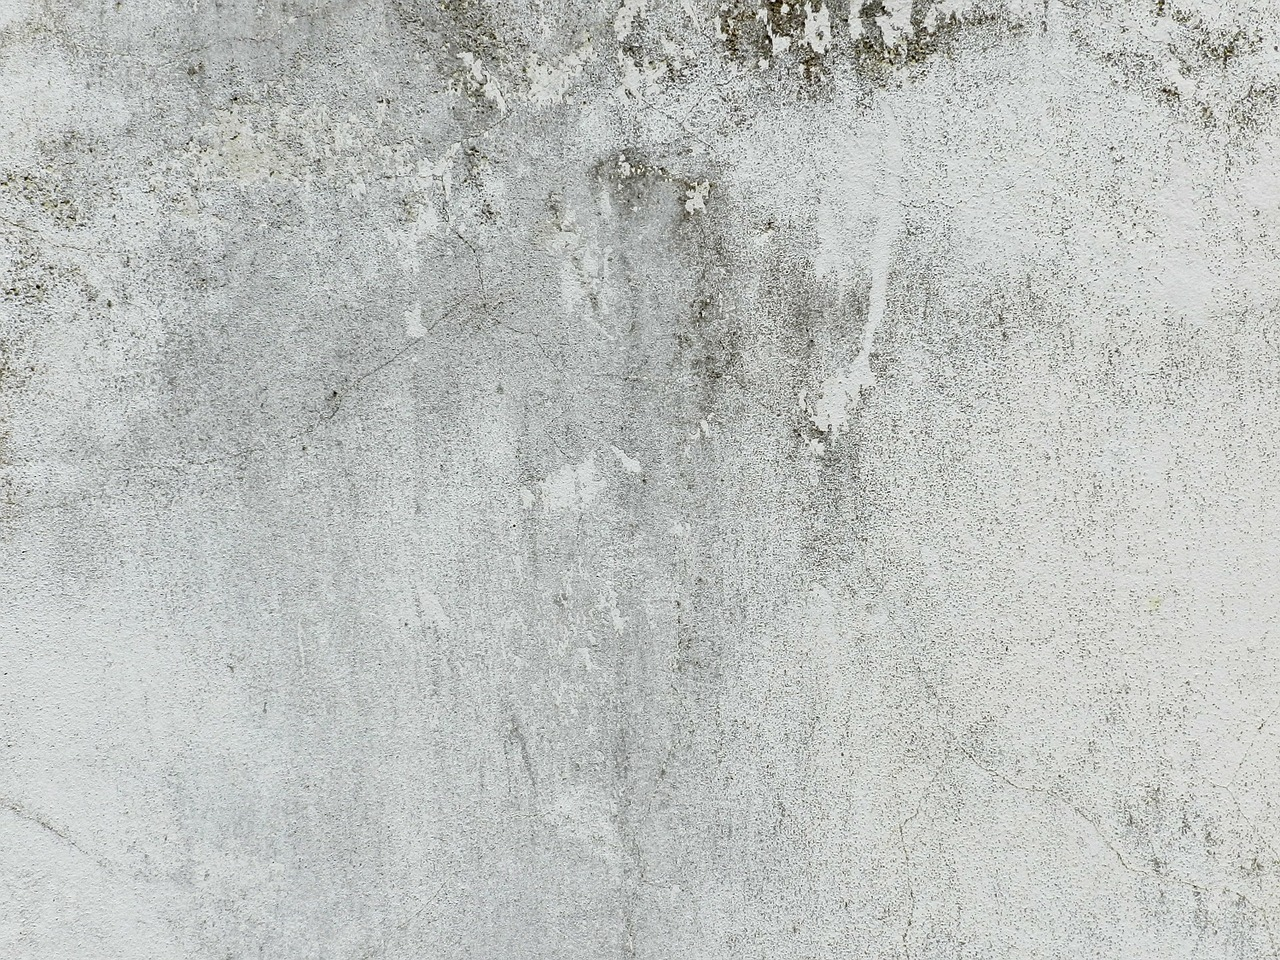 mortar-background